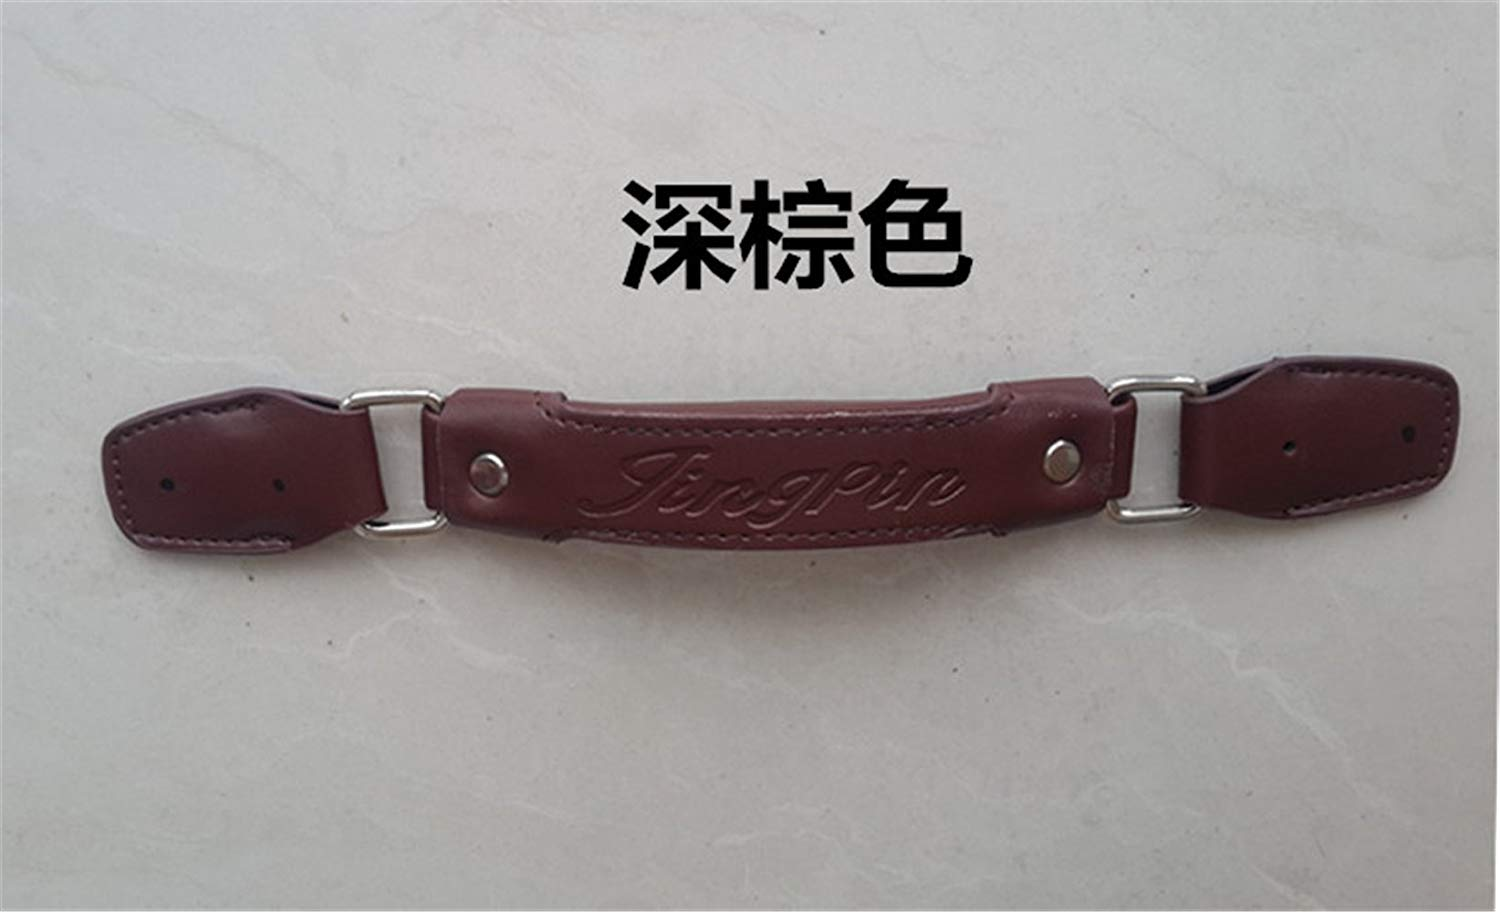 26ece32ddcf8 Cheap Leather Suitcase Handle, find Leather Suitcase Handle deals on ...